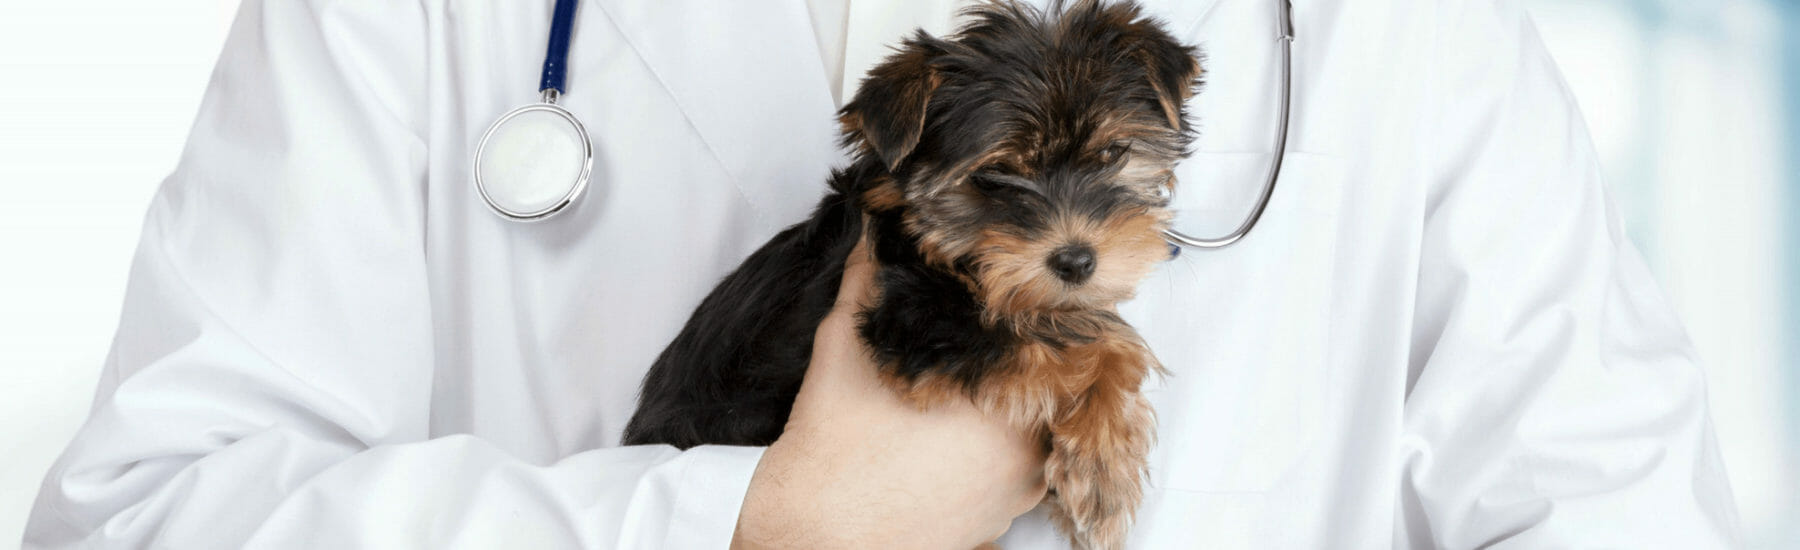 Small black dog being held by a veterinarian